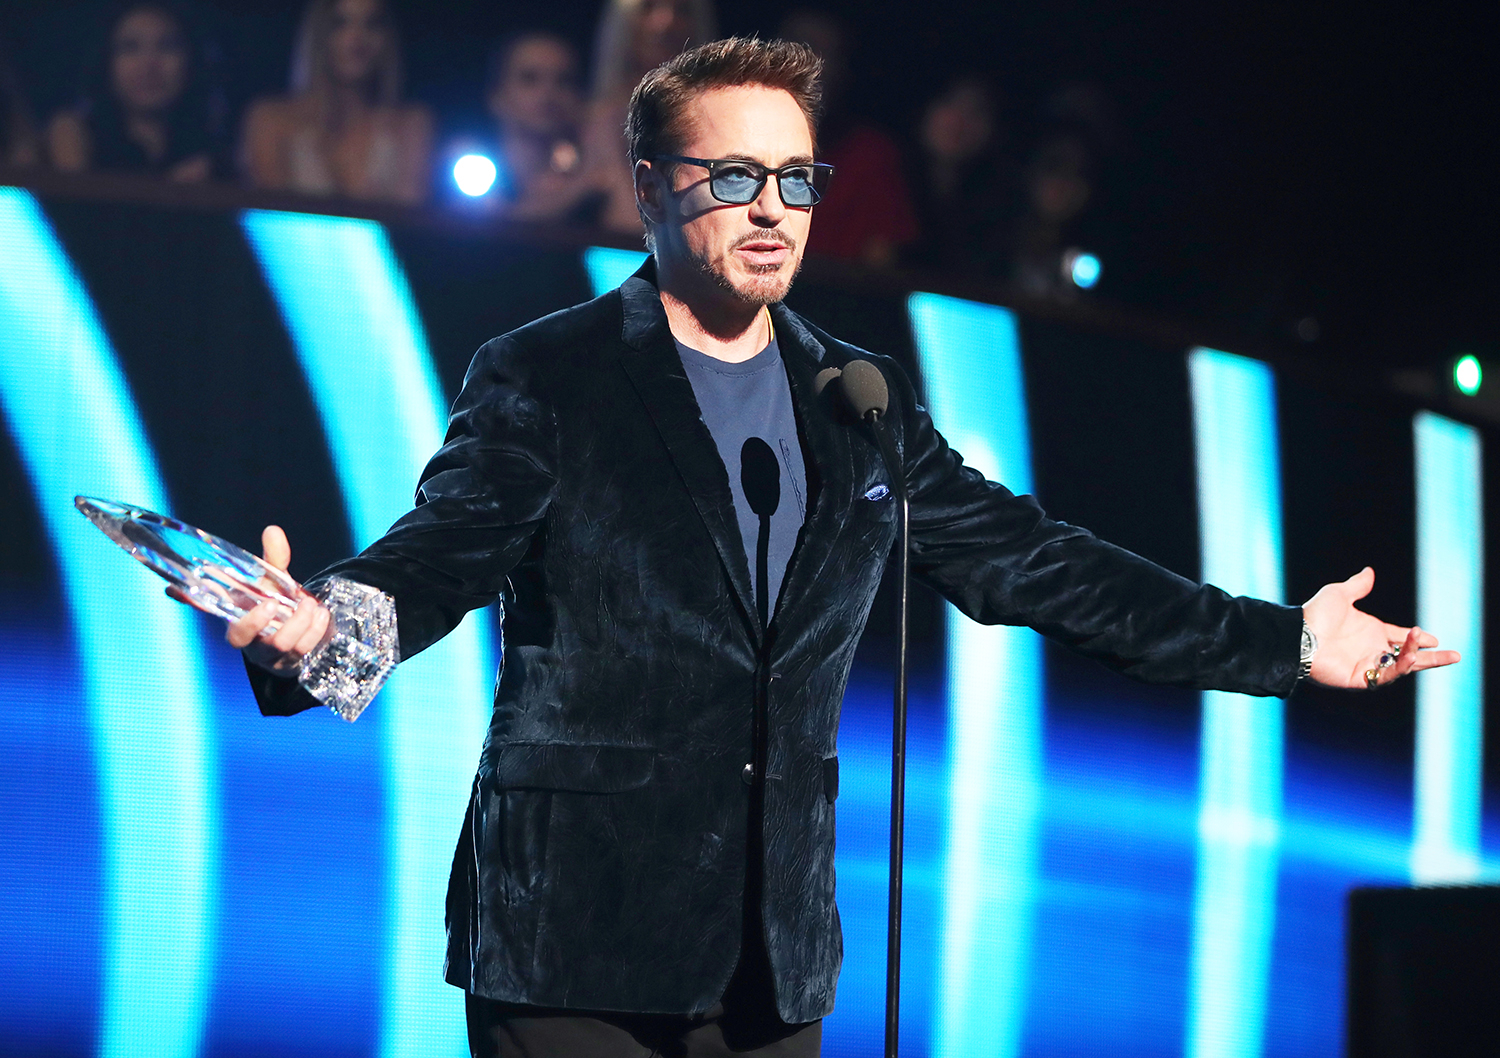 Robert Downey Jr. accepts the Favorite Movie Actor award onstage during the People's Choice Awards 2017 at Microsoft Theater on January 18, 2017 in Los Angeles, California.